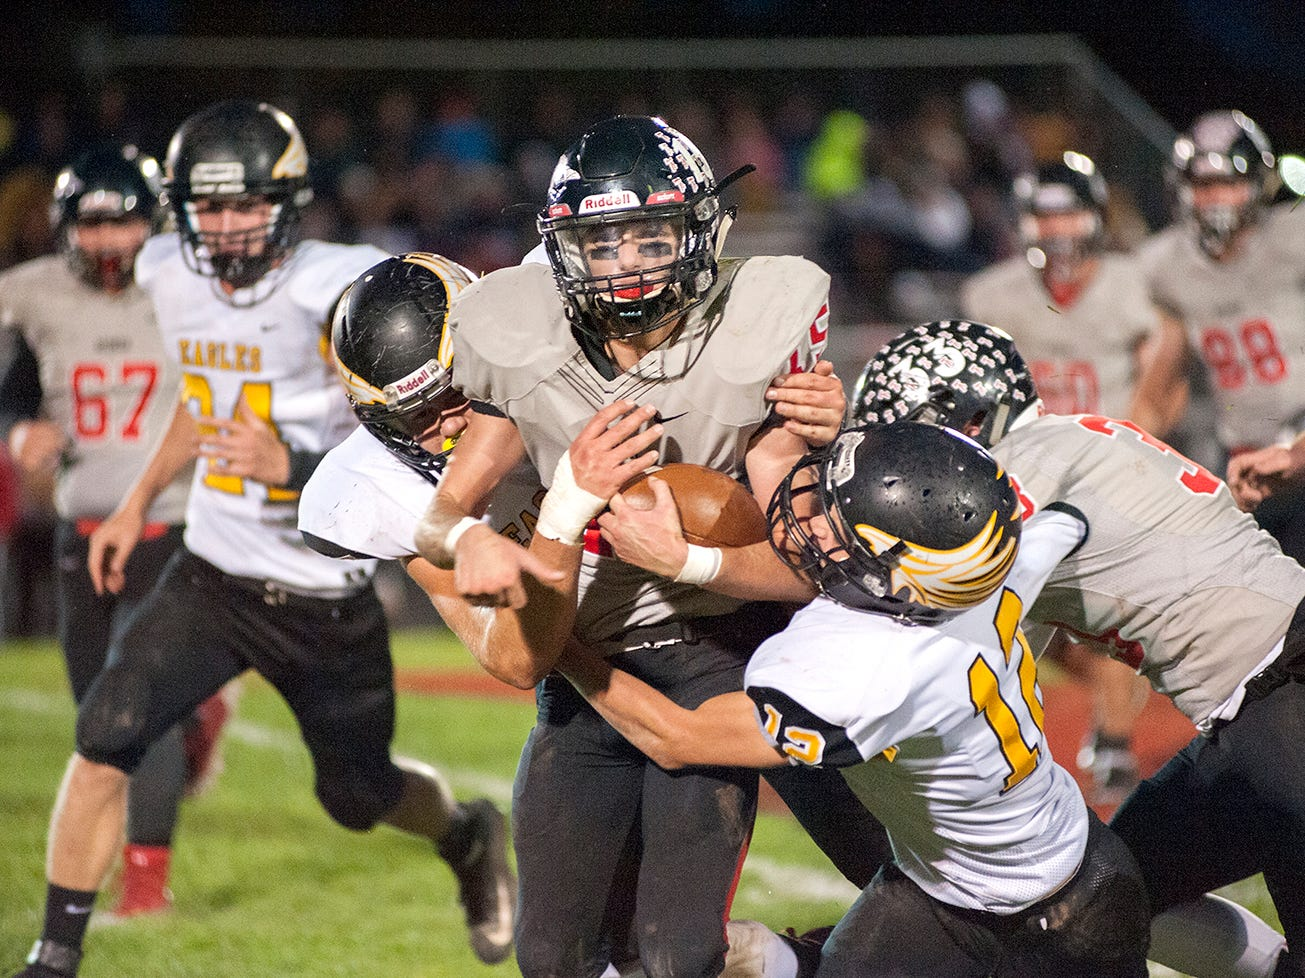 Bucyrus' Hastin Zier is tackled by the Colonel Crawford defense.